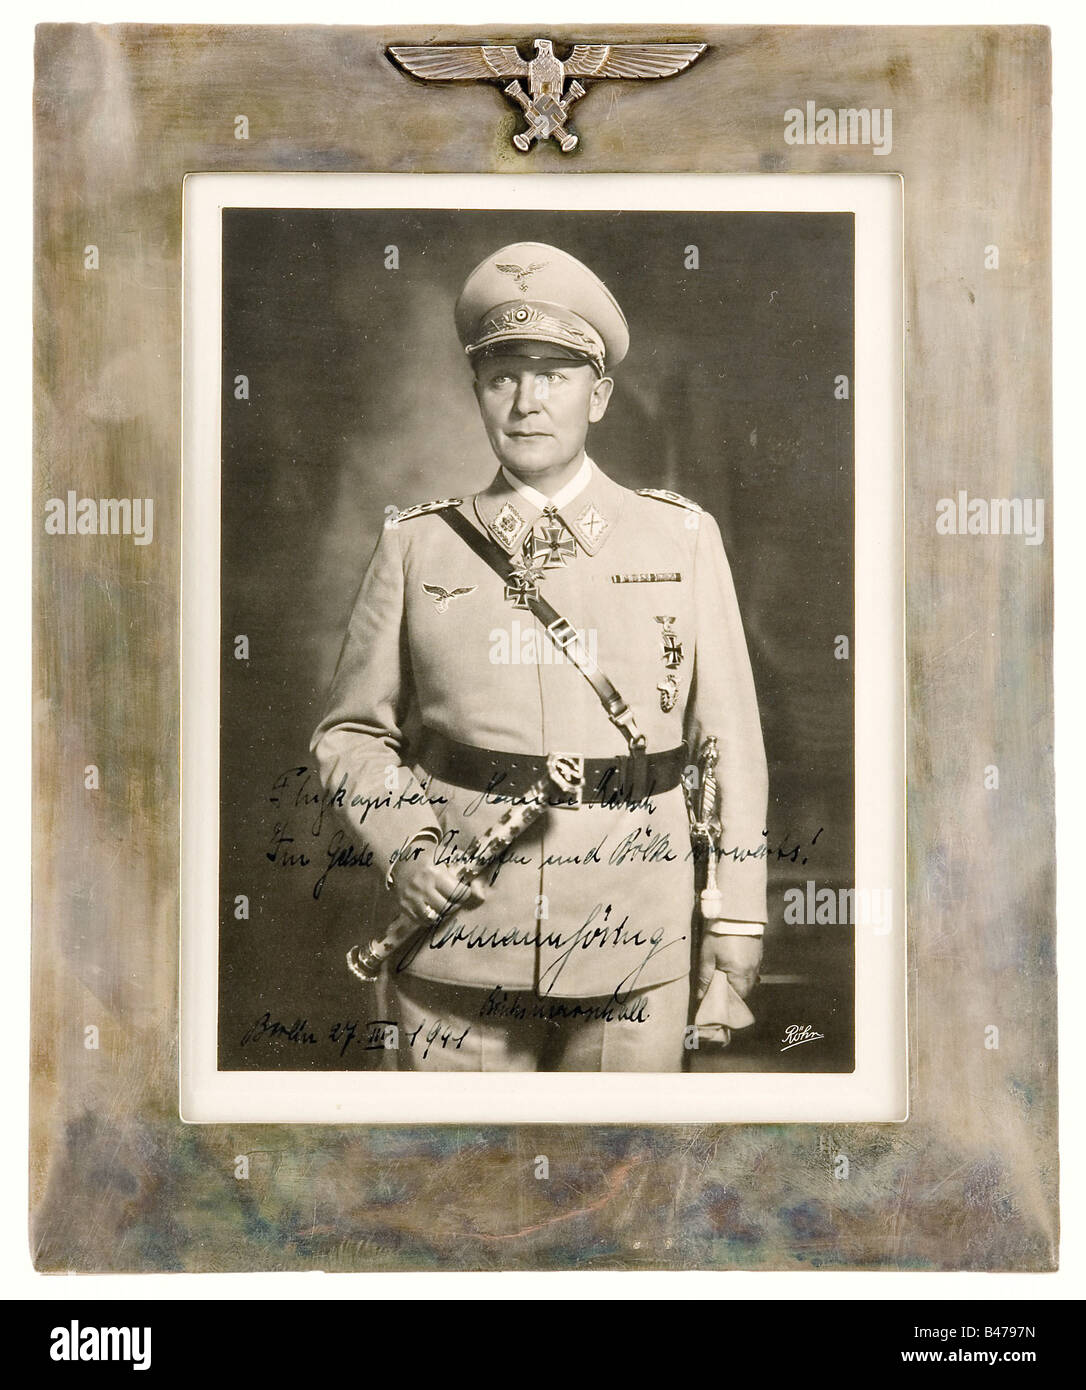 Hanna Reitsch - Hermann Göring., Dedication photograph of the Reichsmarschall dated 'Berlin 27.III.1941', - Stock Image